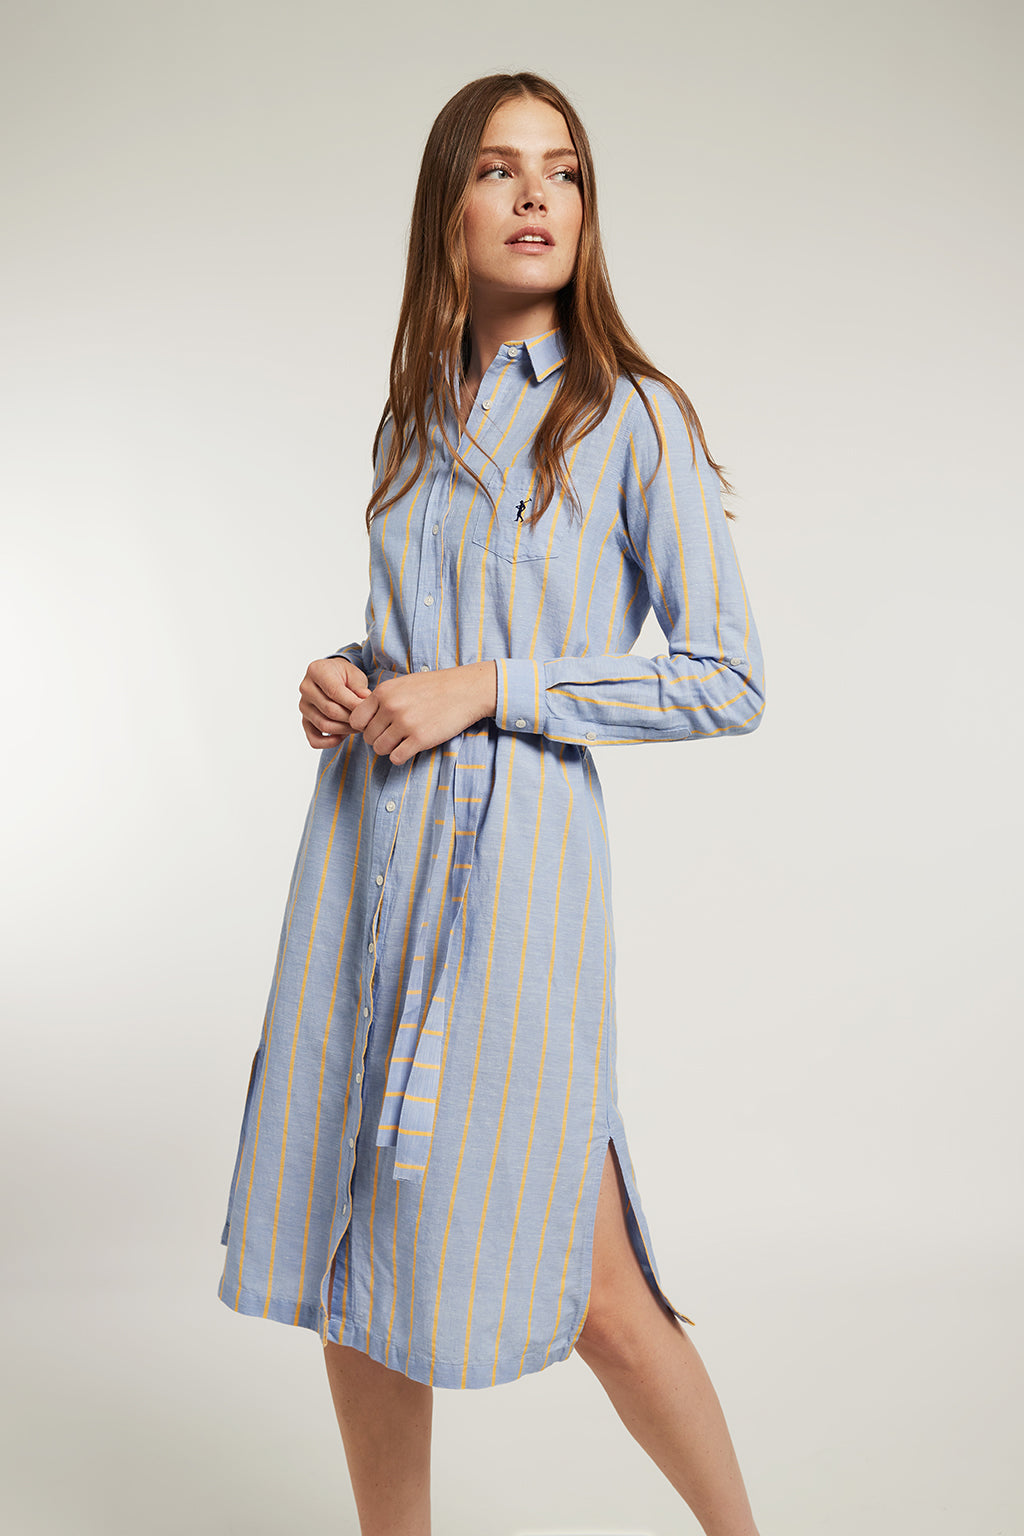 Sky blue linen and cotton dress with yellow stripes